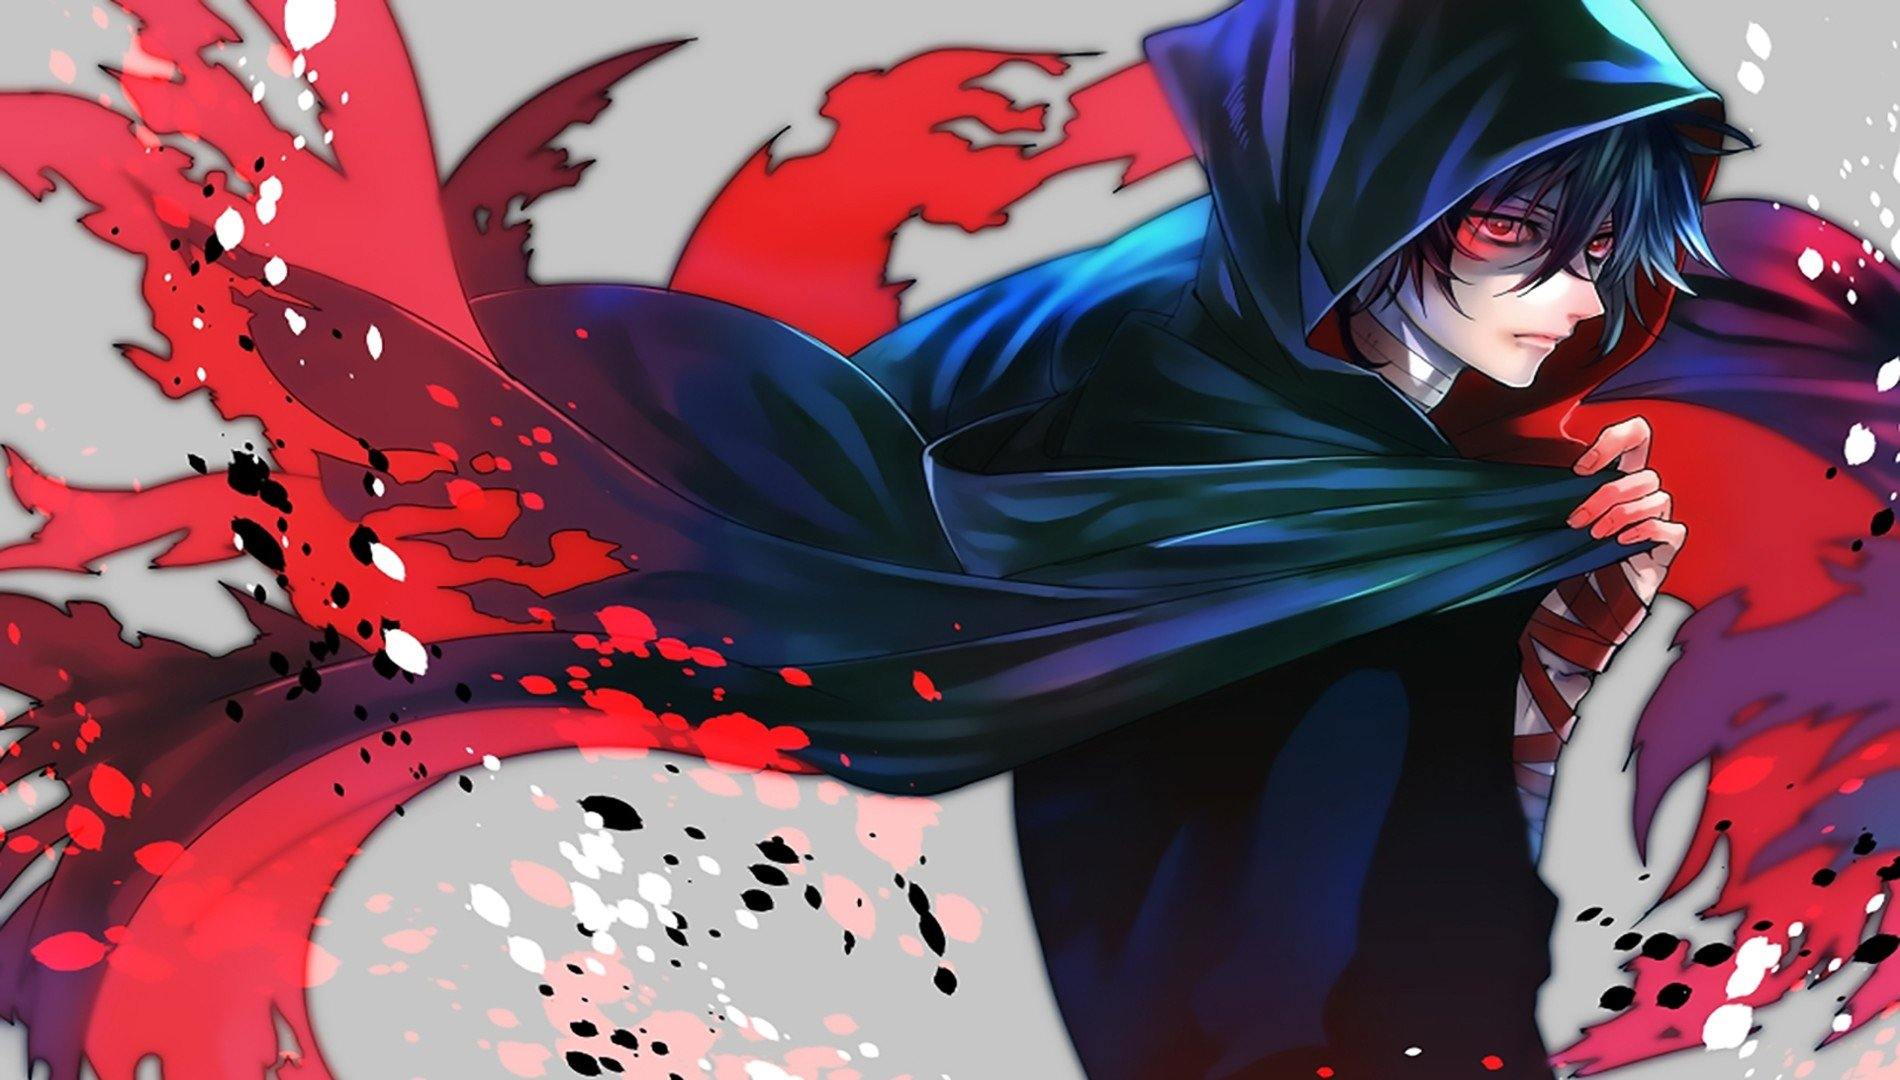 Anime boy with red eyes blue hair wallpaper | 1900x1080 ...